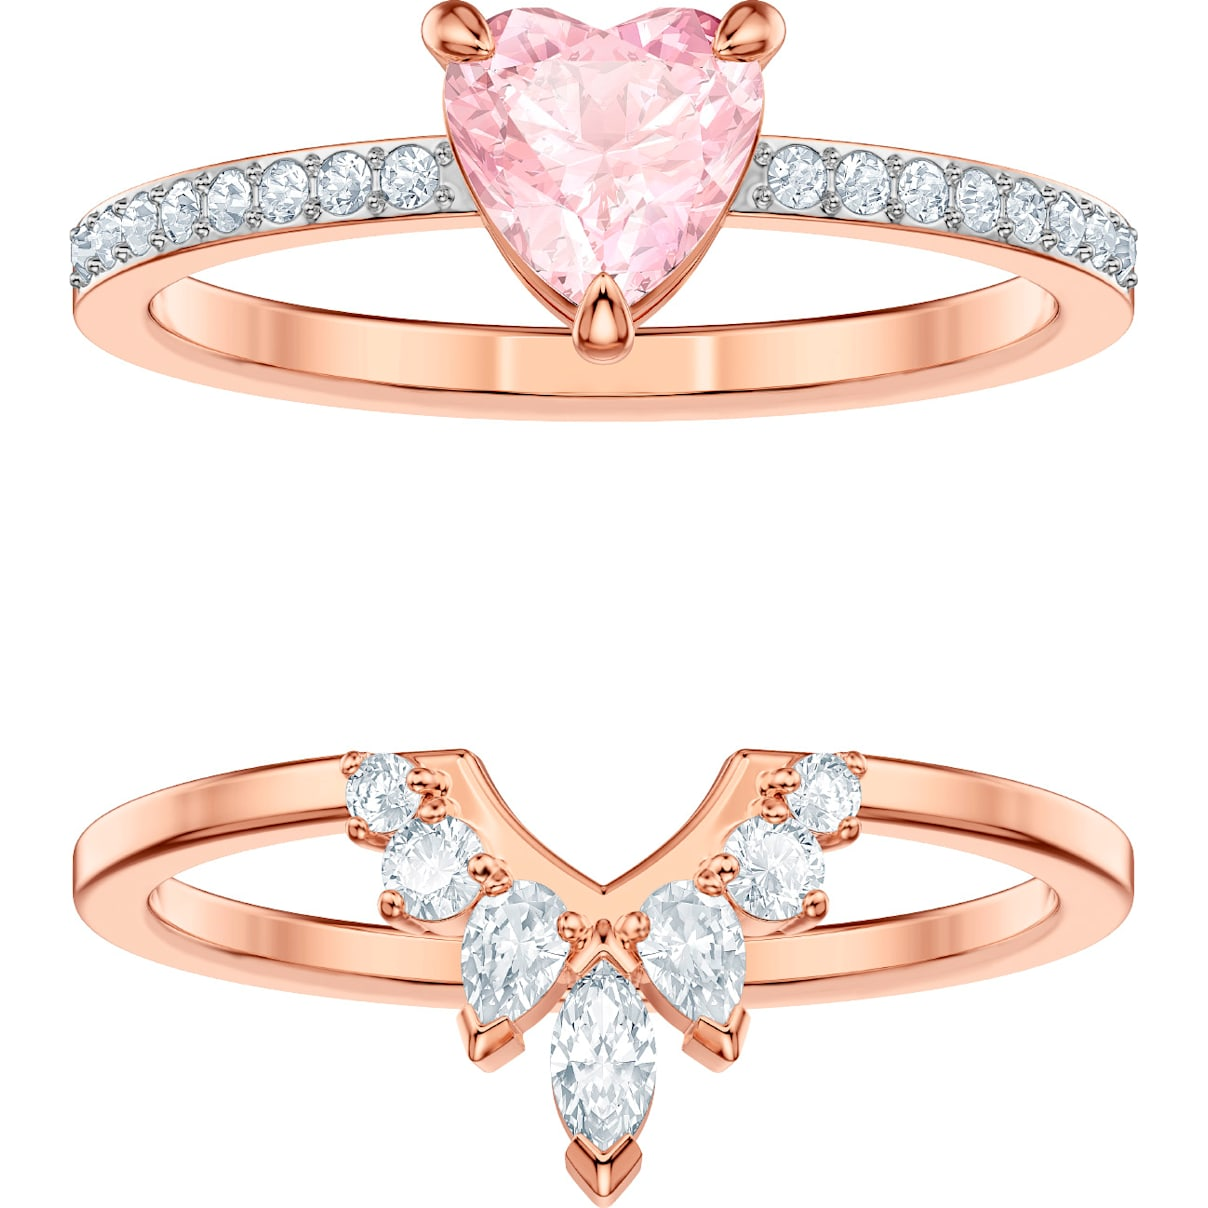 Swarovski One Set, Multi-colored, Rose-gold tone plated